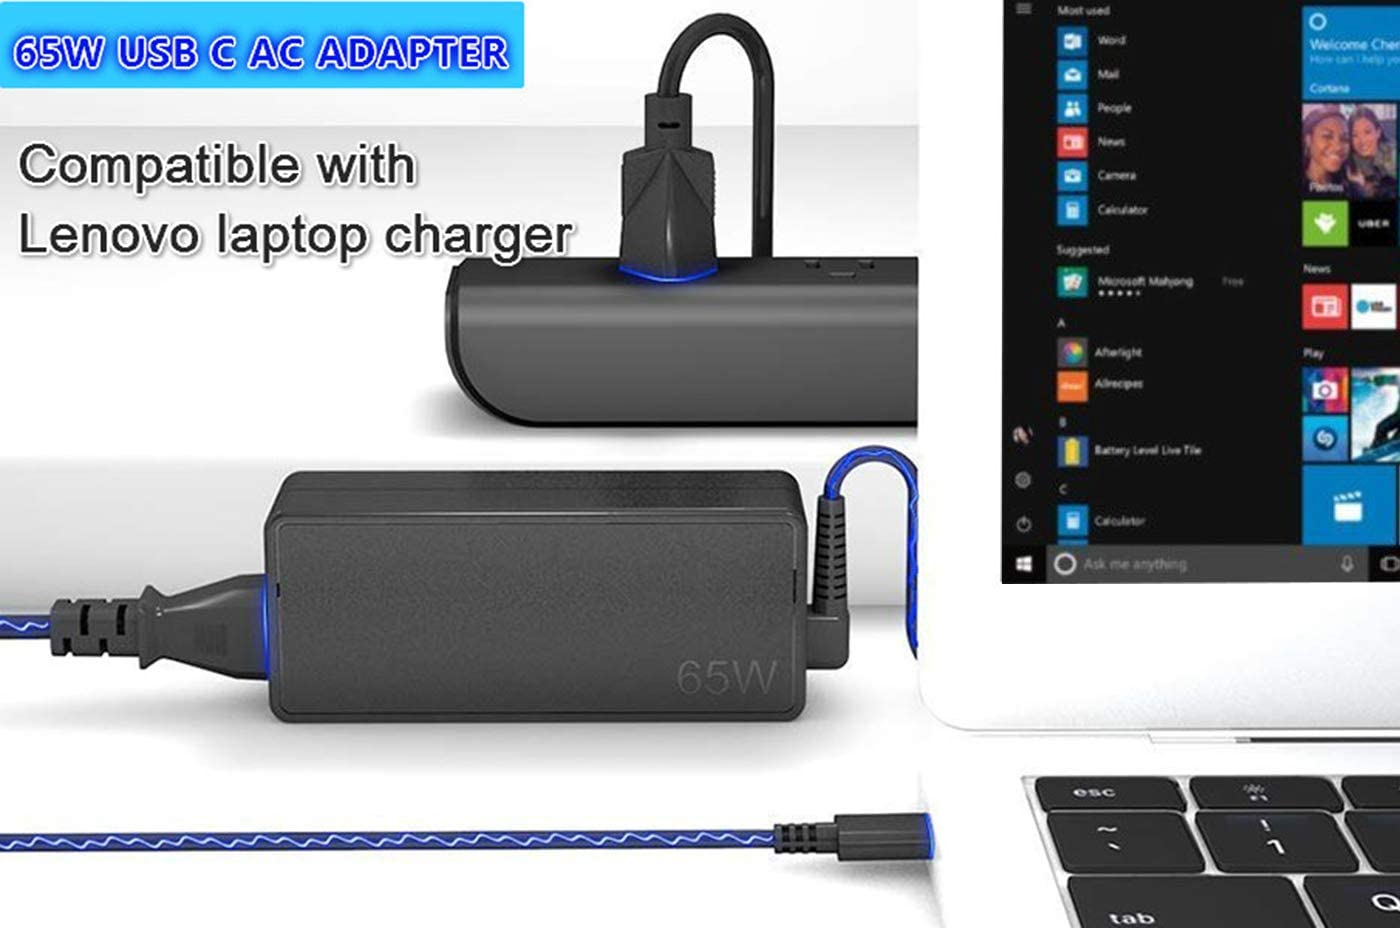 65W USB Type-C Laptop Adapter Charger Fit for ThinkPad X1 Tablet Carbon Yoga 370 730 730-13IKB X270 X280 X380 T480 T480S T580 T580s T570 E580 E585 E480 L380 L480 L580 Power Supply Cord